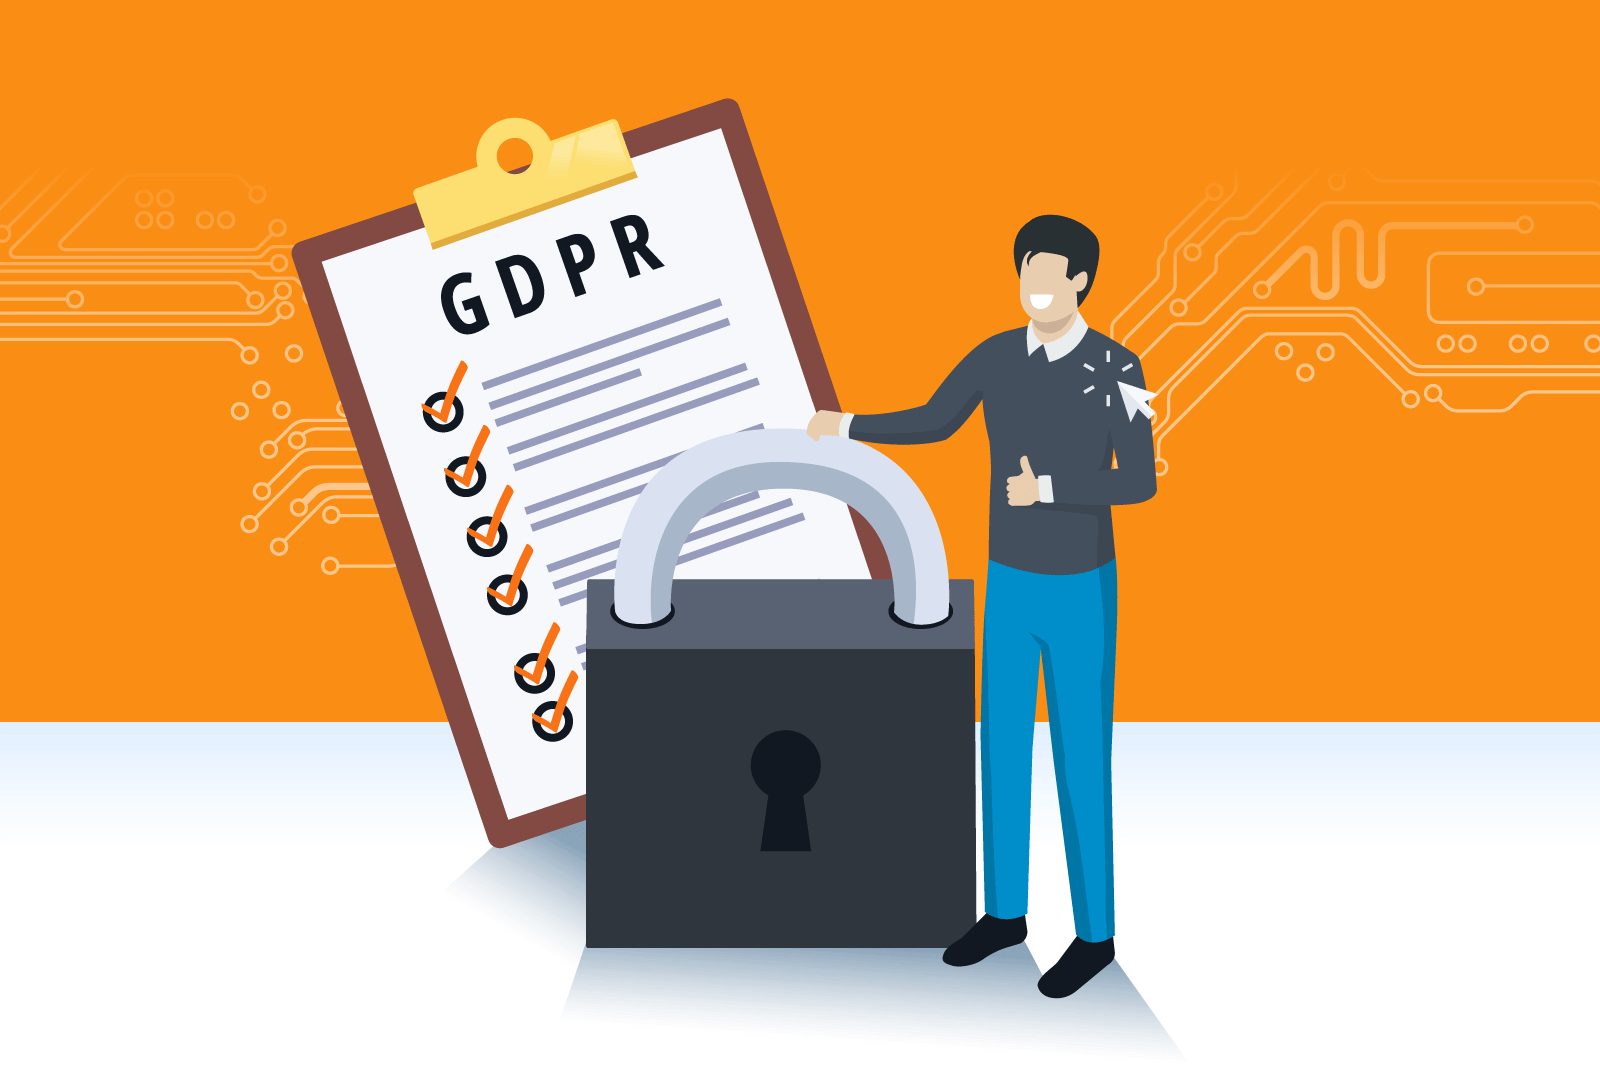 Six months of the GDPR: three questions for Wojciech Wiewiórowski